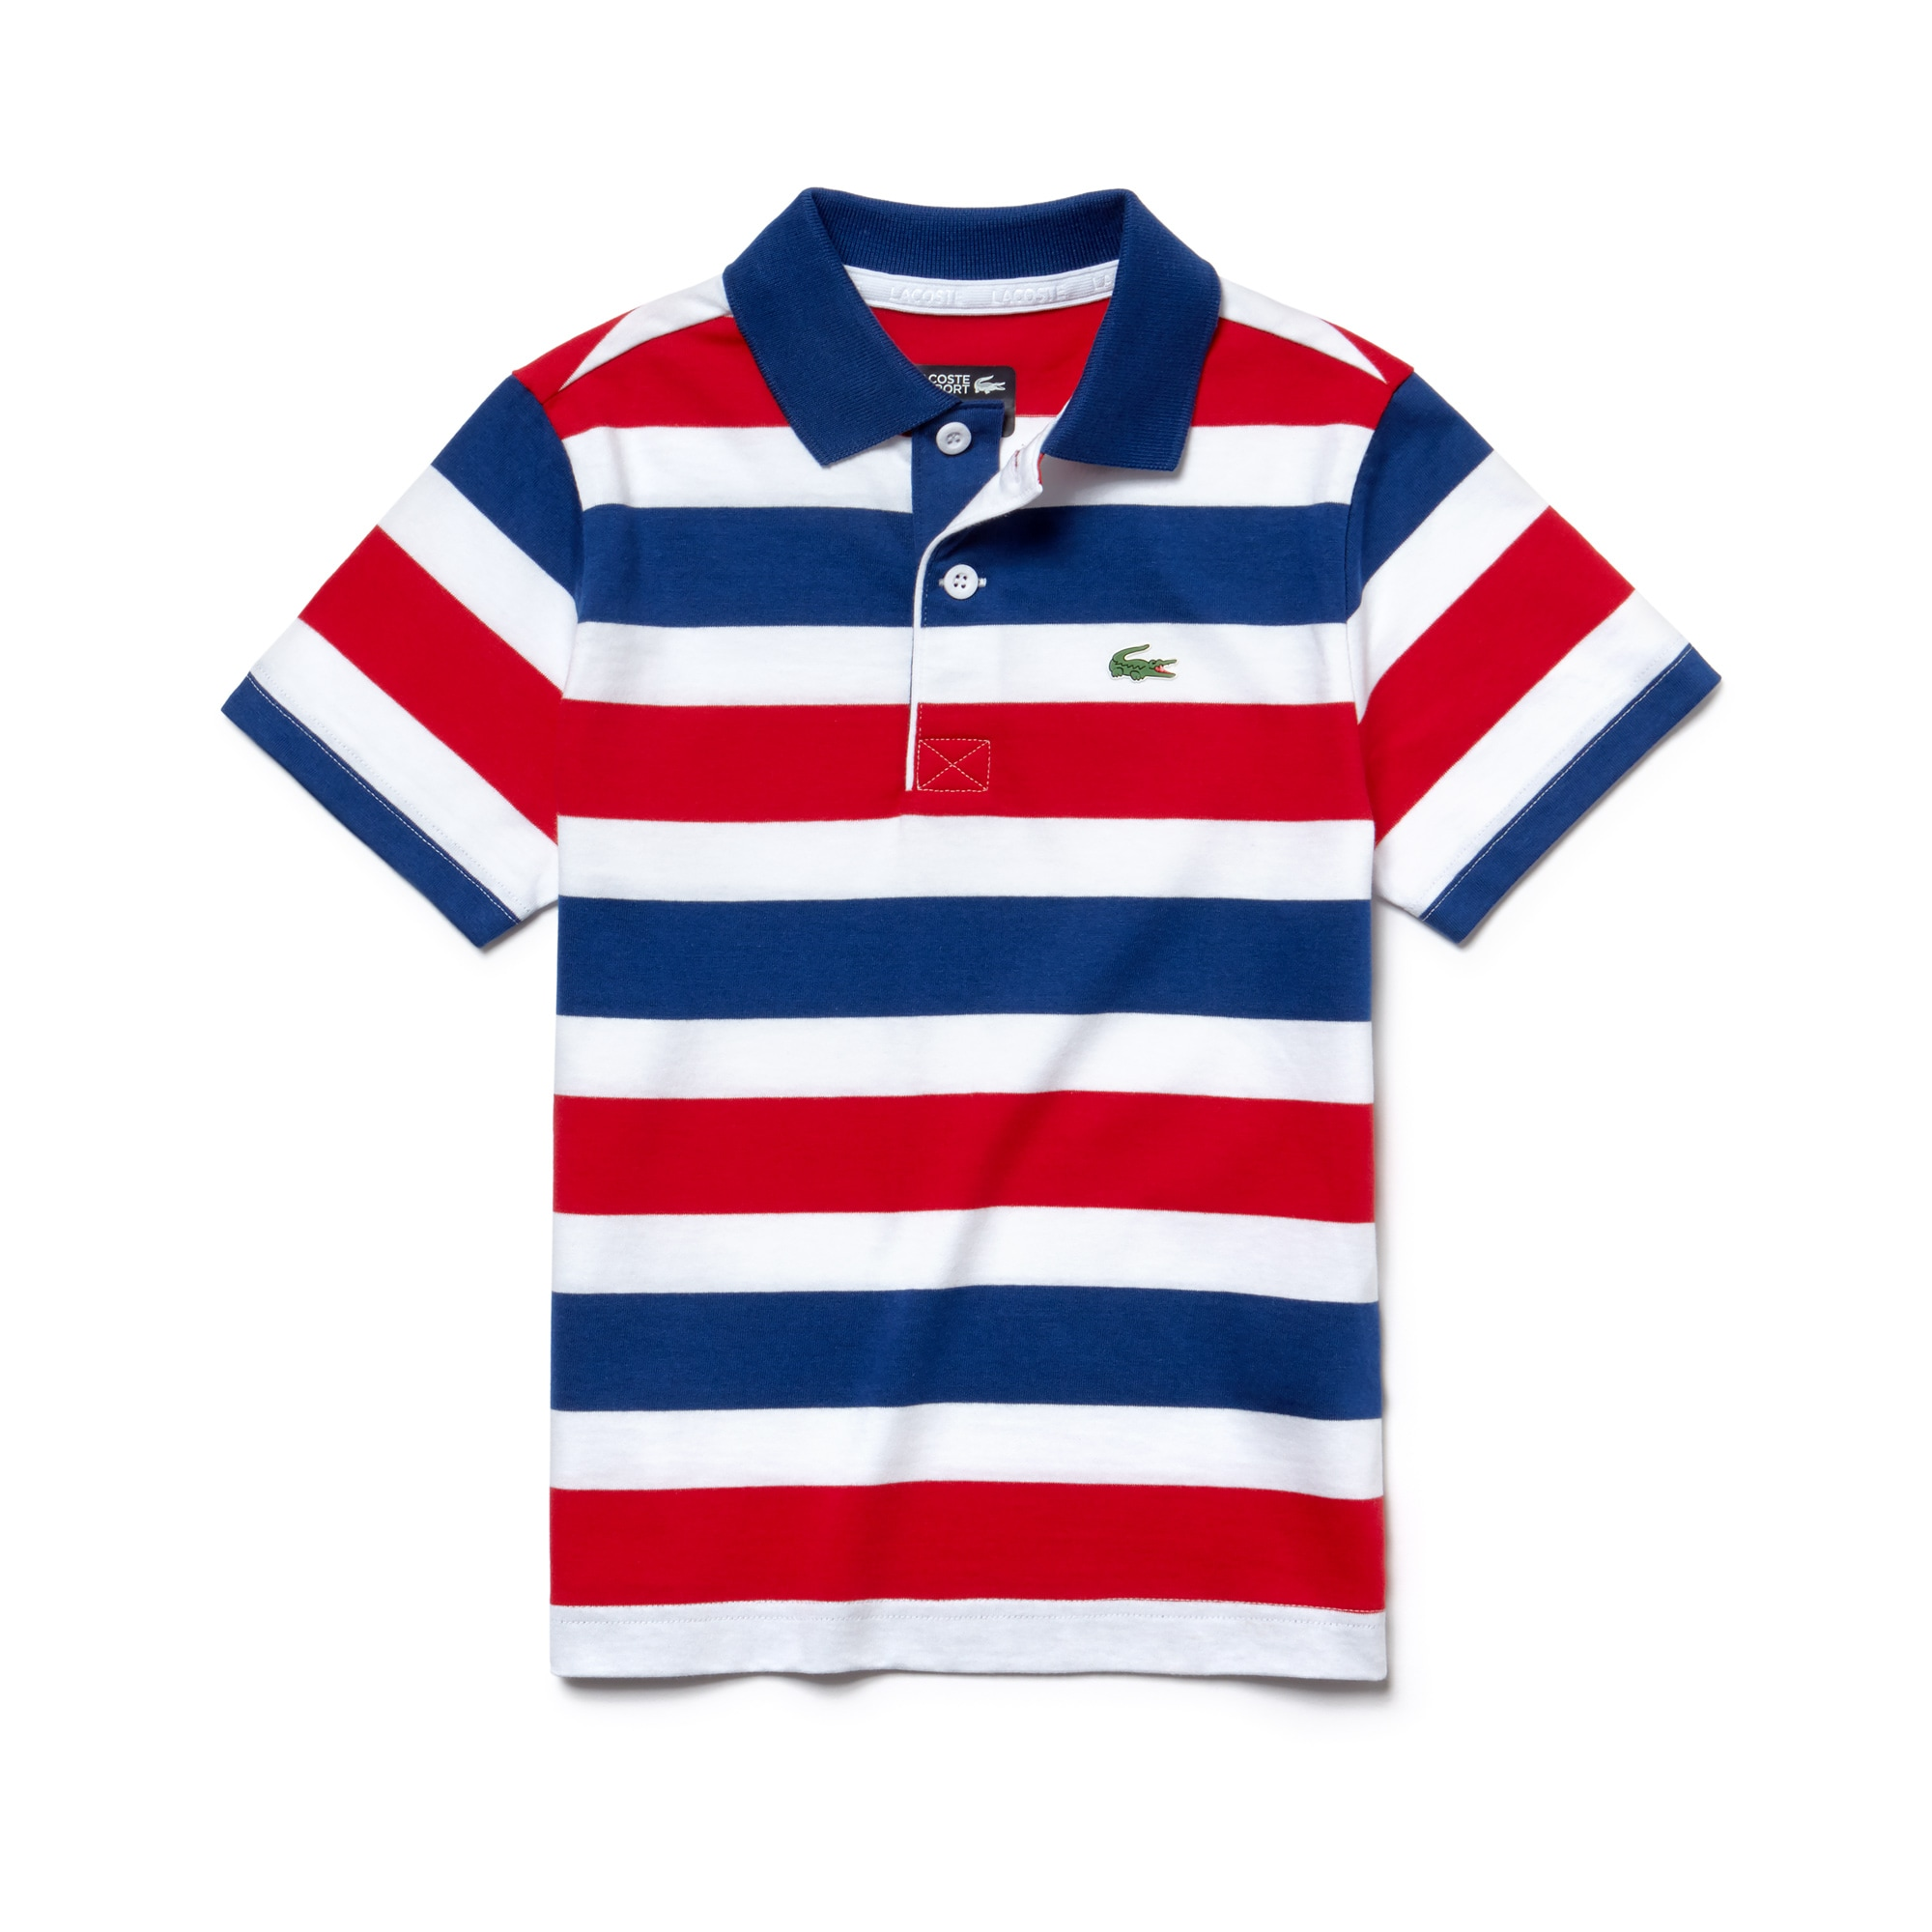 Boys' Lacoste SPORT Striped Cotton Jersey Tennis Polo Shirt